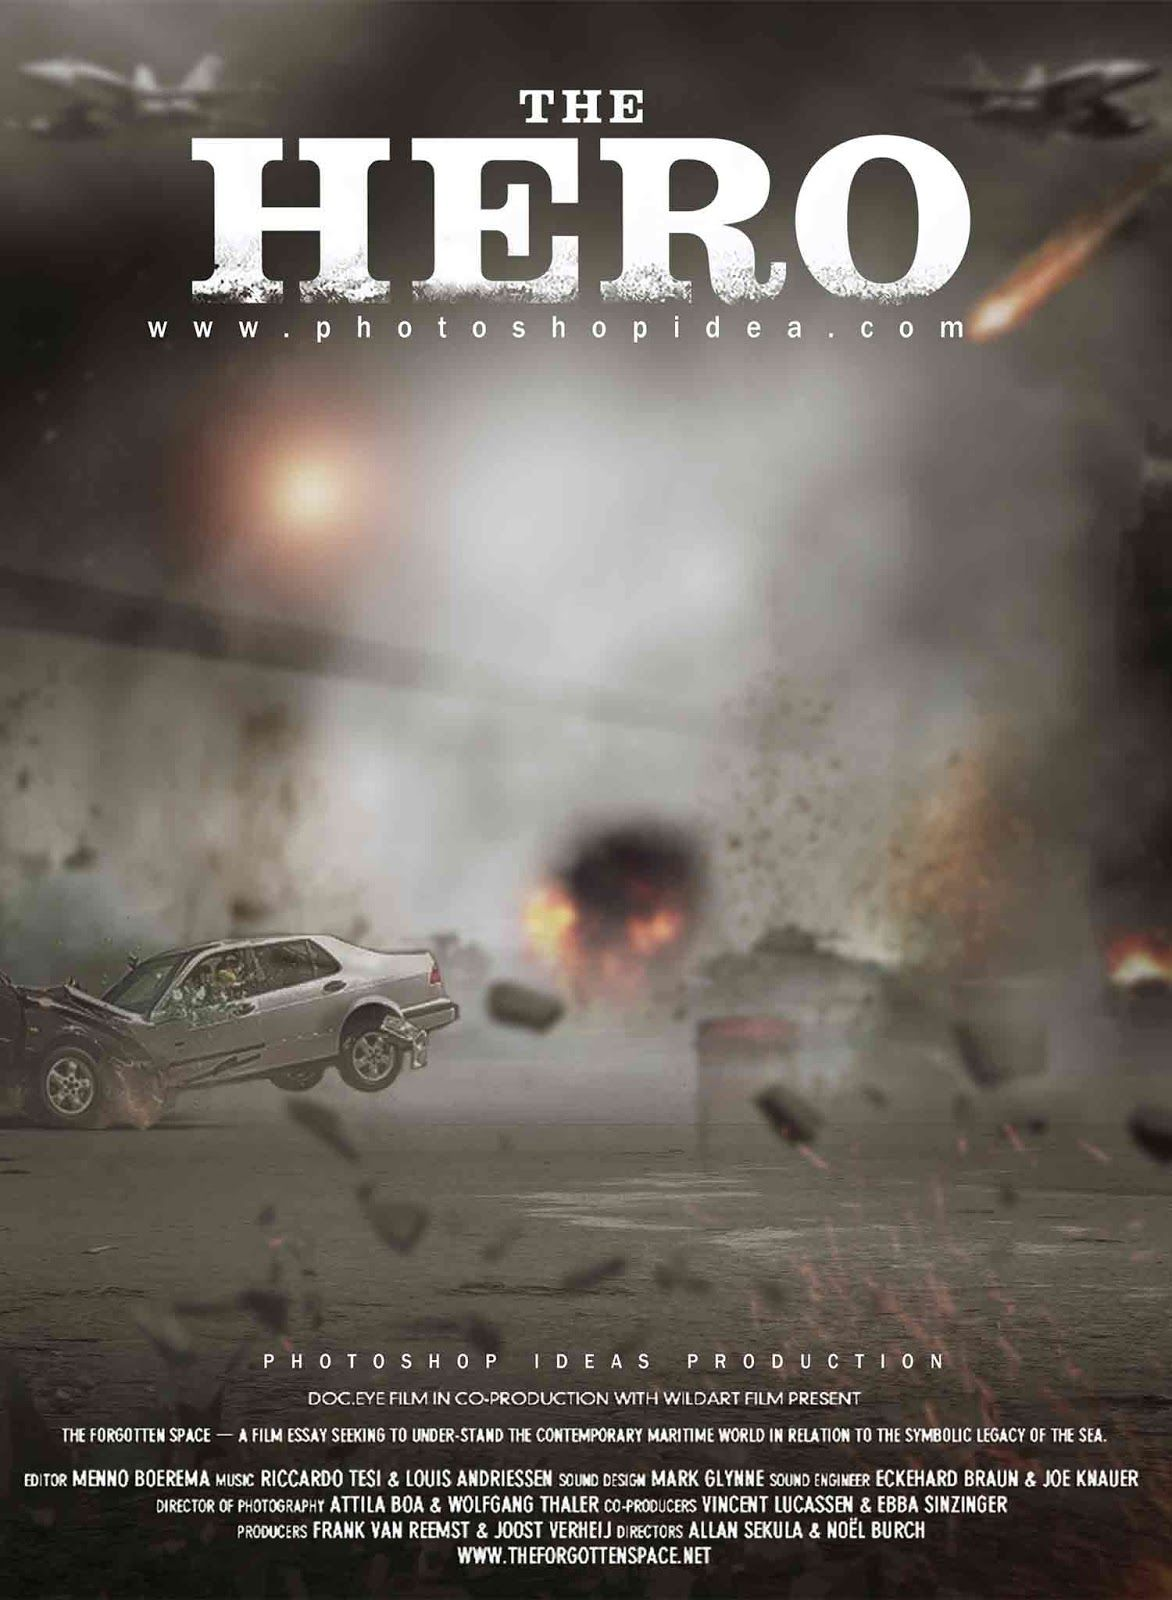 Latest Action Movie Poster Background Full Hd Download 2020 With